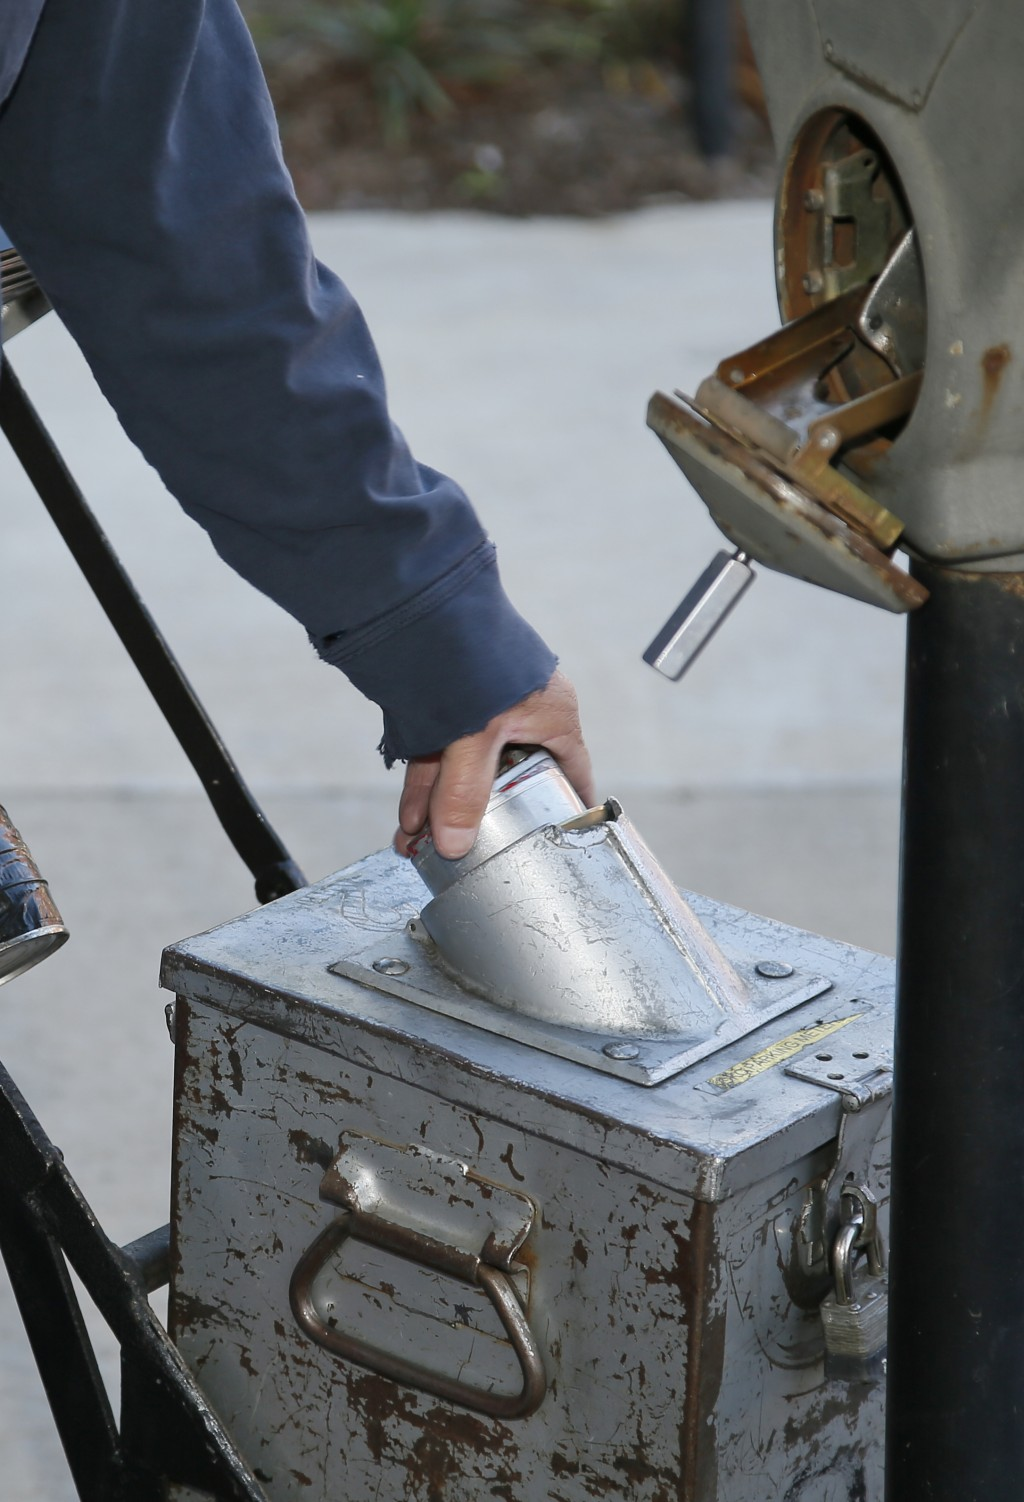 In this Wednesday, Oct. 11, 2017 photo, Wade Beal, parking meter technician, empties coins from a parking meter into a locked collection can in Oklaho...